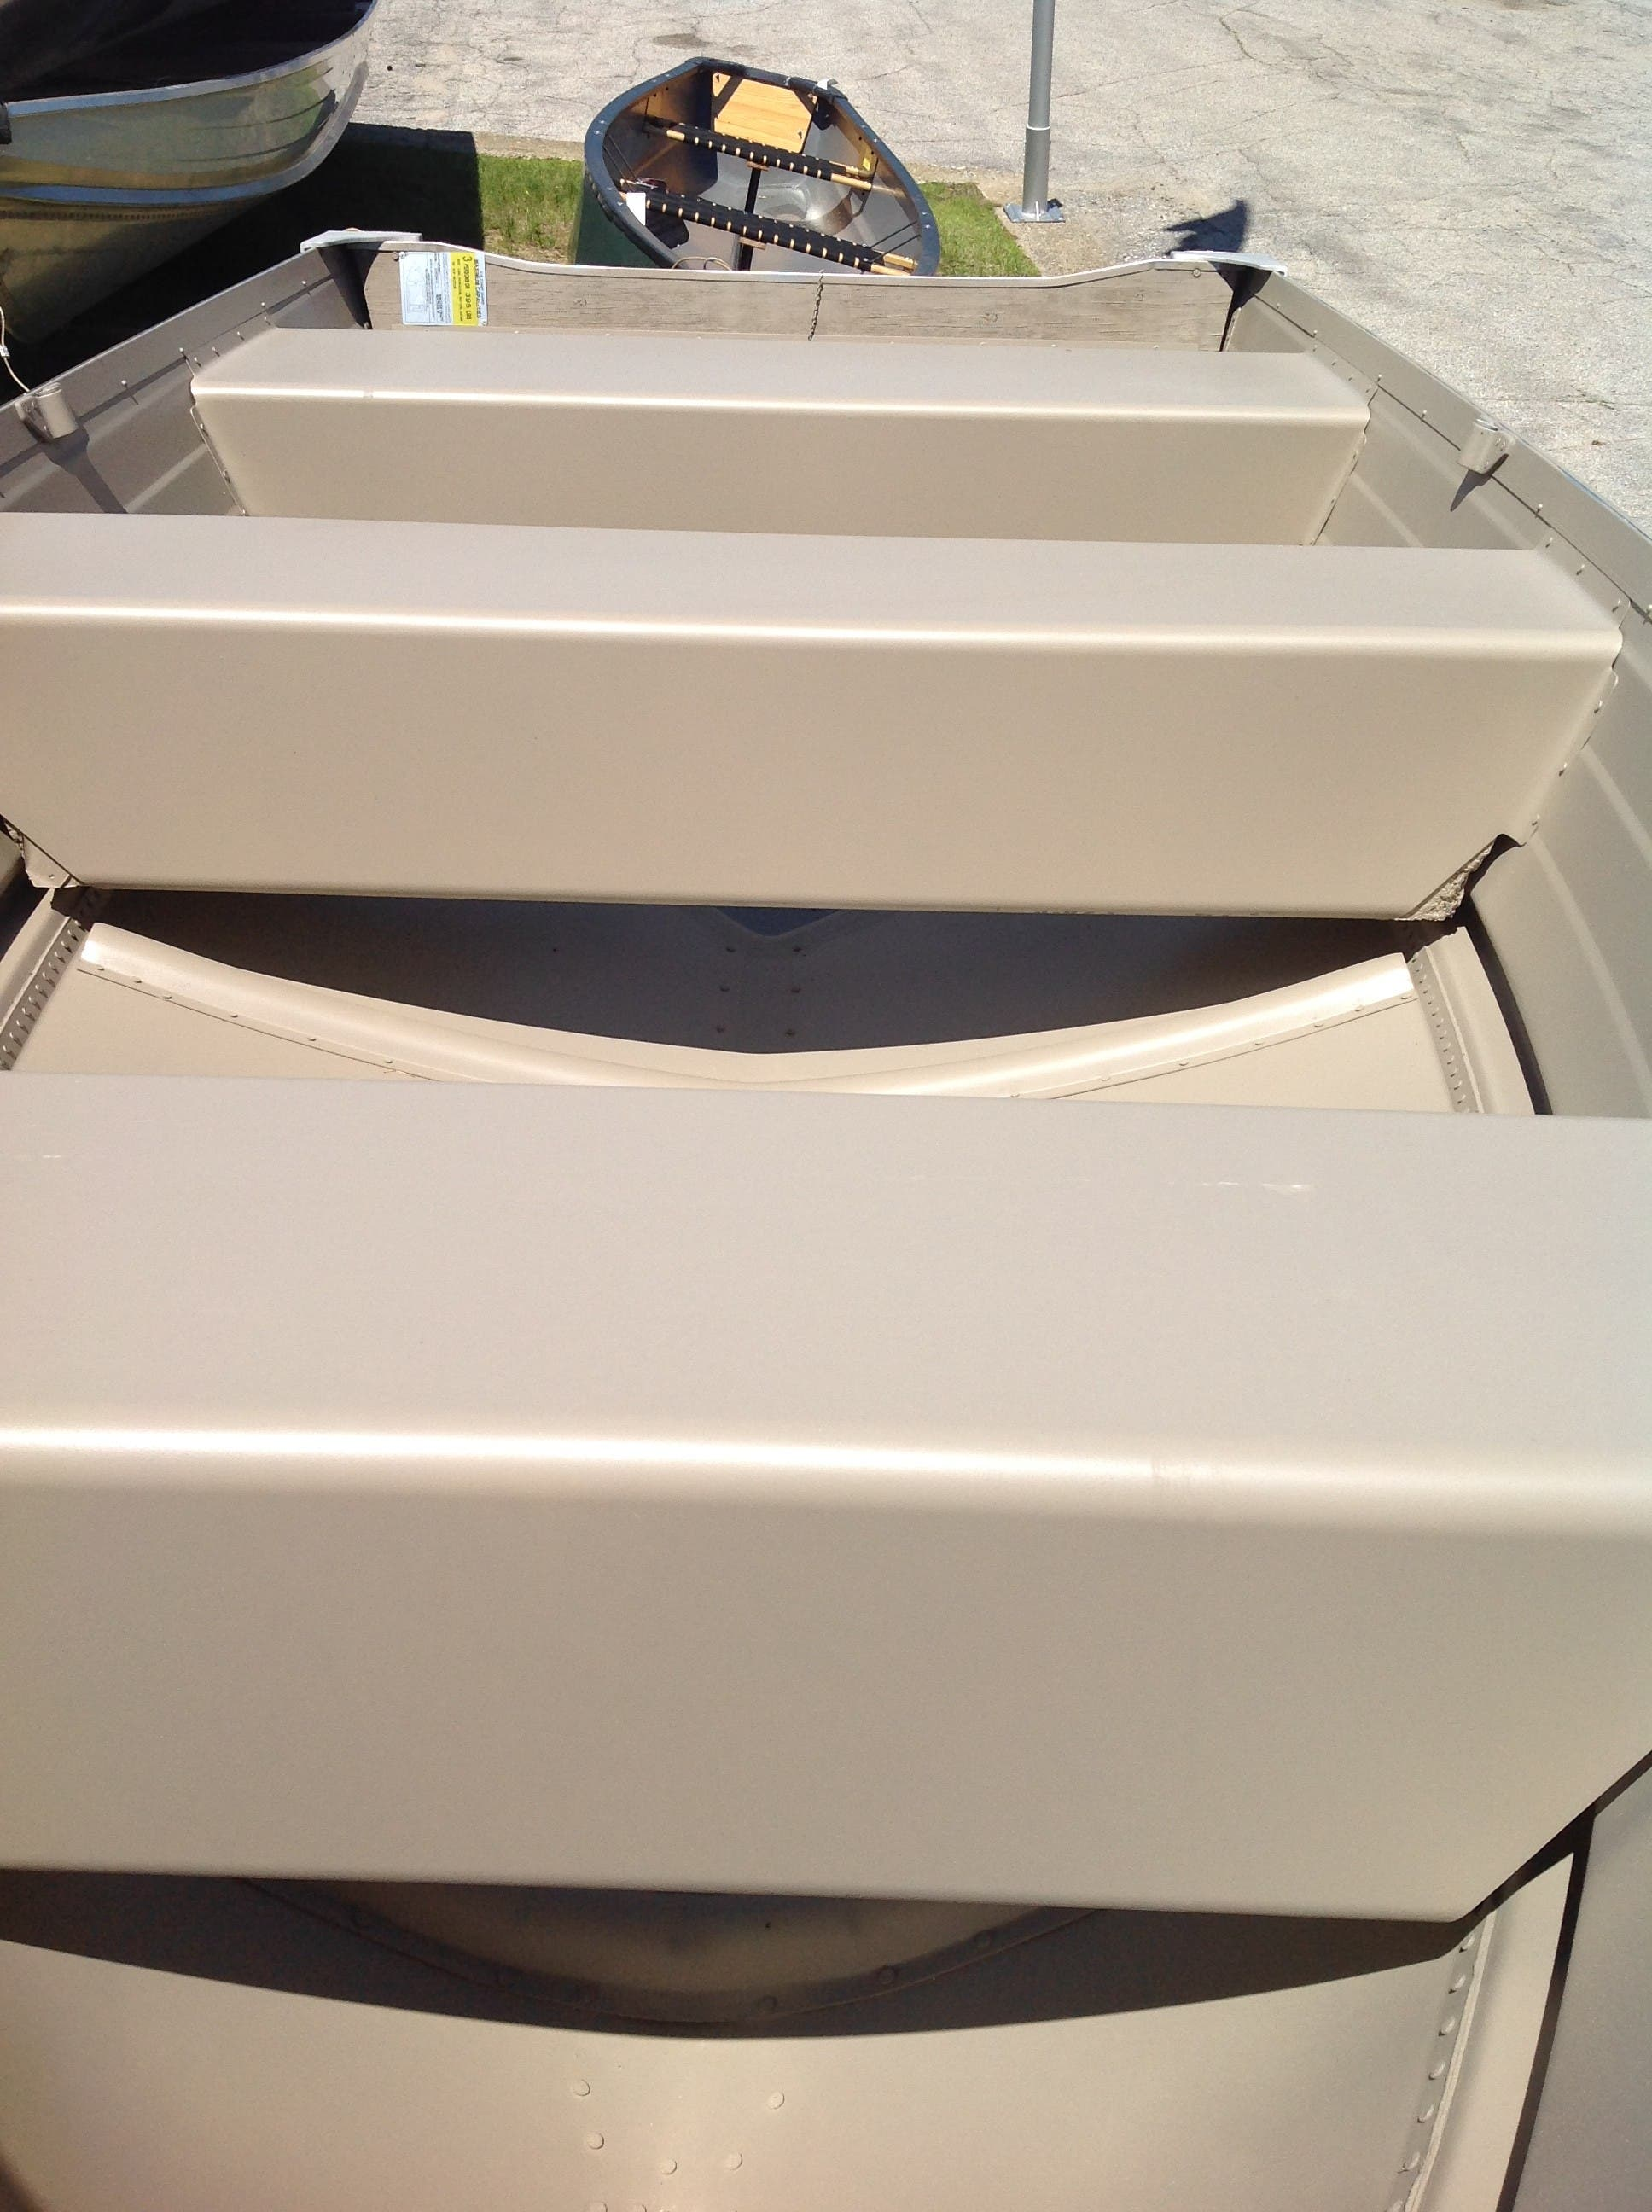 2021 Smoker Craft boat for sale, model of the boat is 12 Canadian & Image # 6 of 7